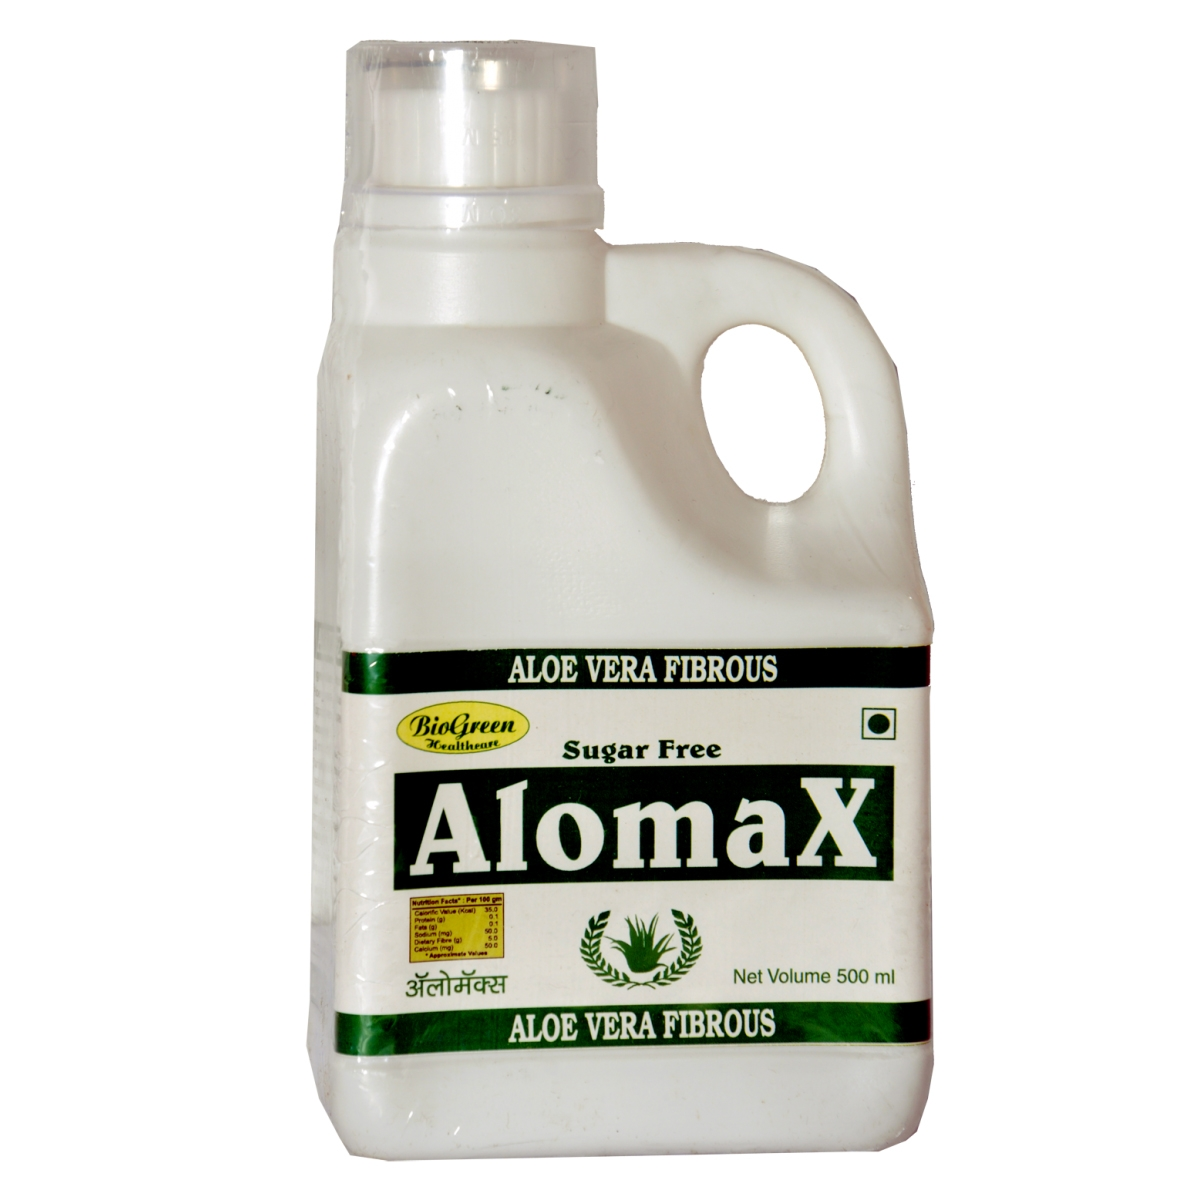 AlomaX In Arwal